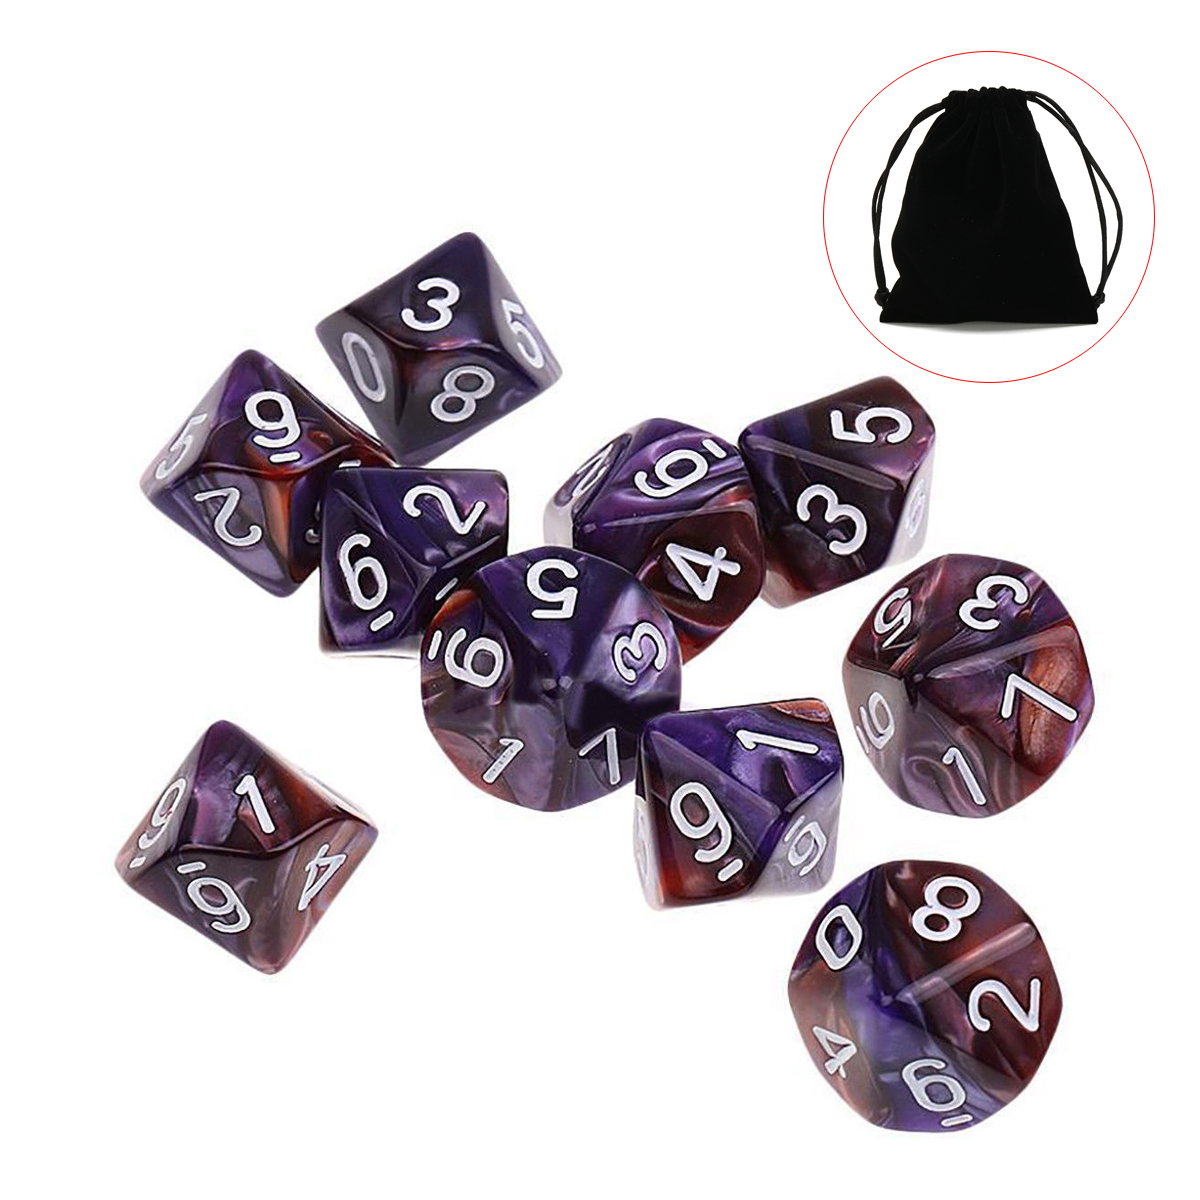 10pcs 10 Sided Dice D10 Polyhedral Dices Table Games EDC Gadget Playing Multisided Dice Table Games